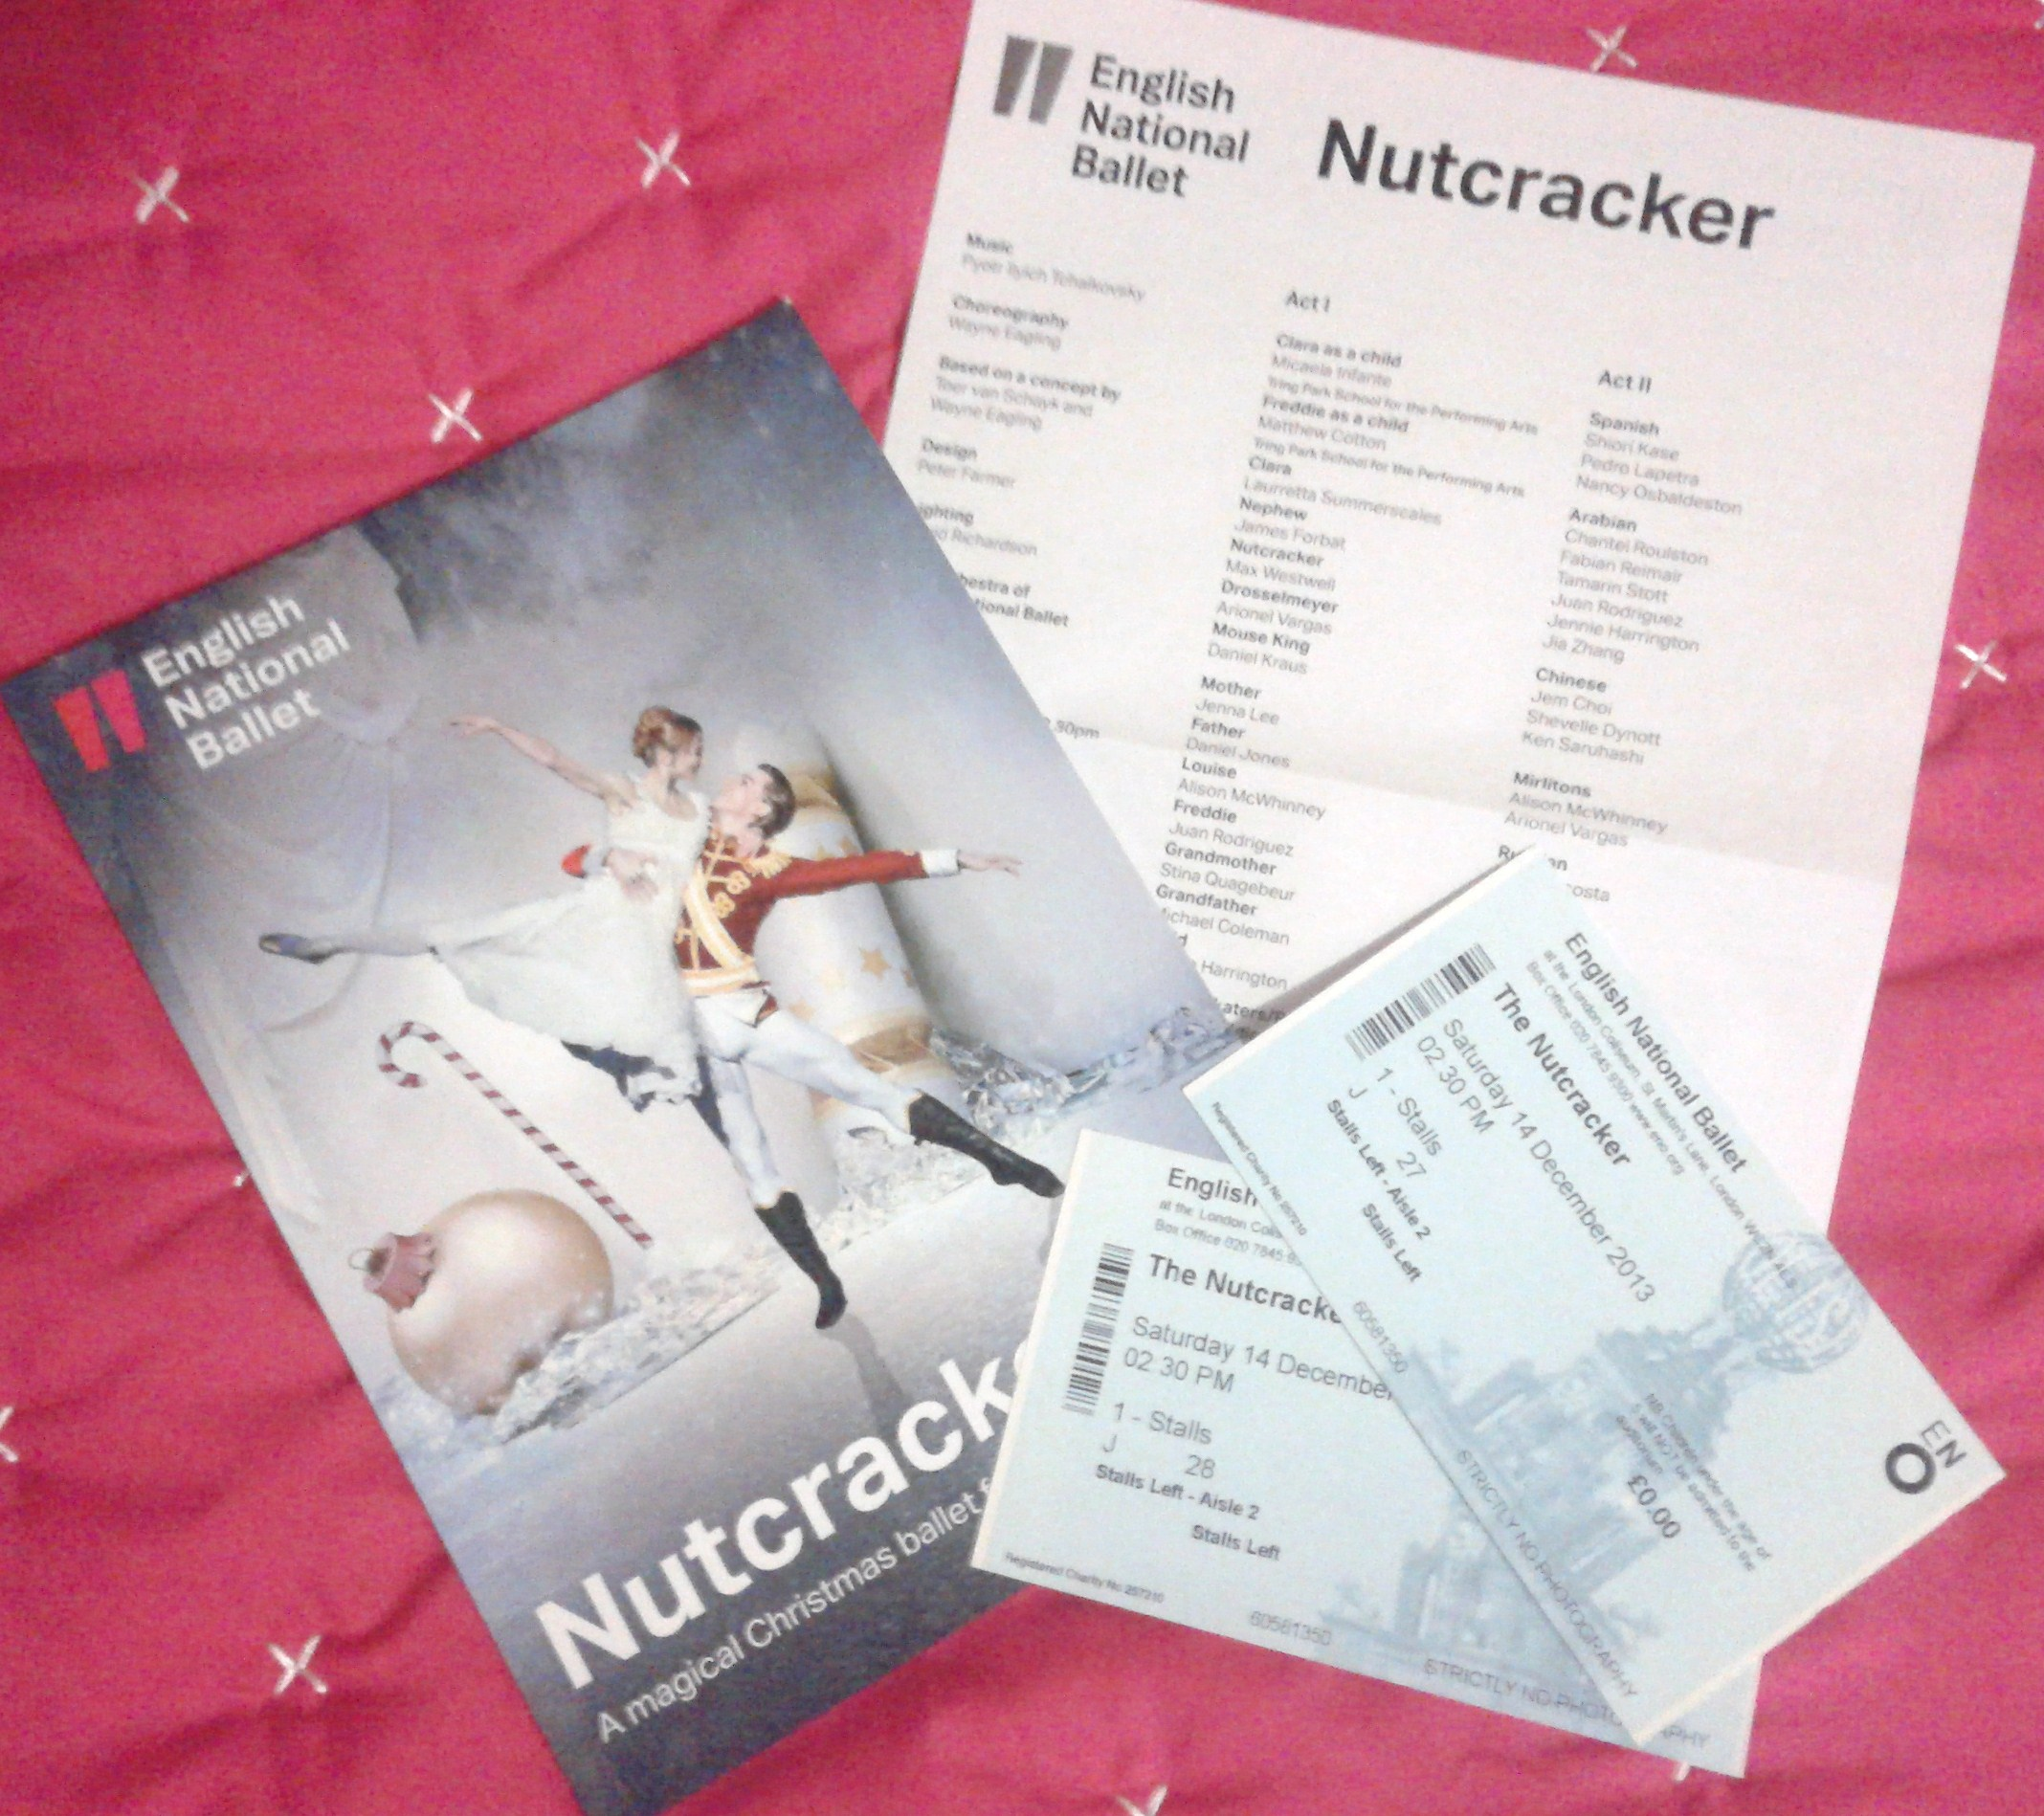 ENB Nutcracker programme and tickets pic